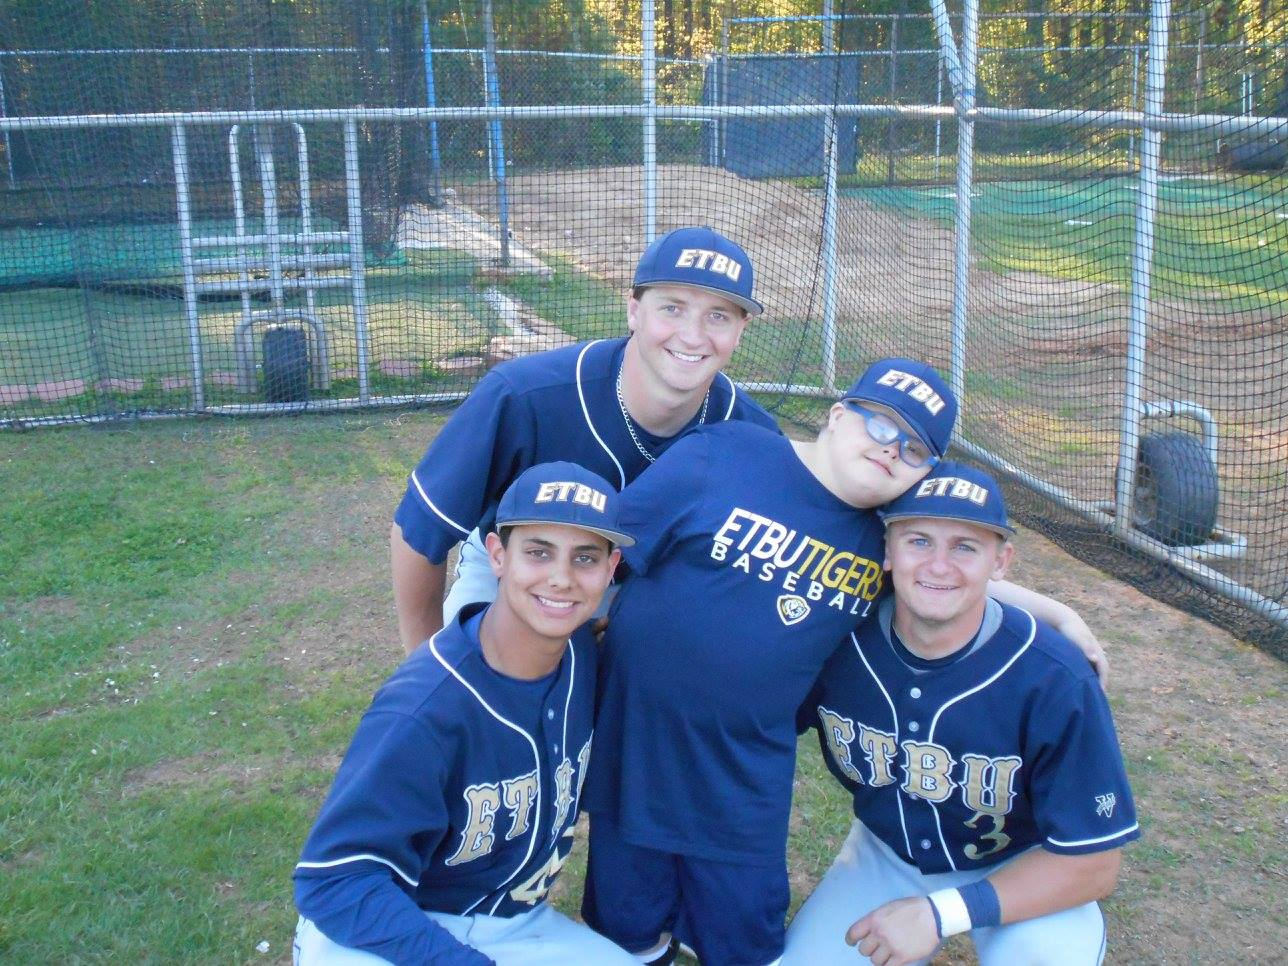 ETBU Baseball signs Mark to National Letter of Intent